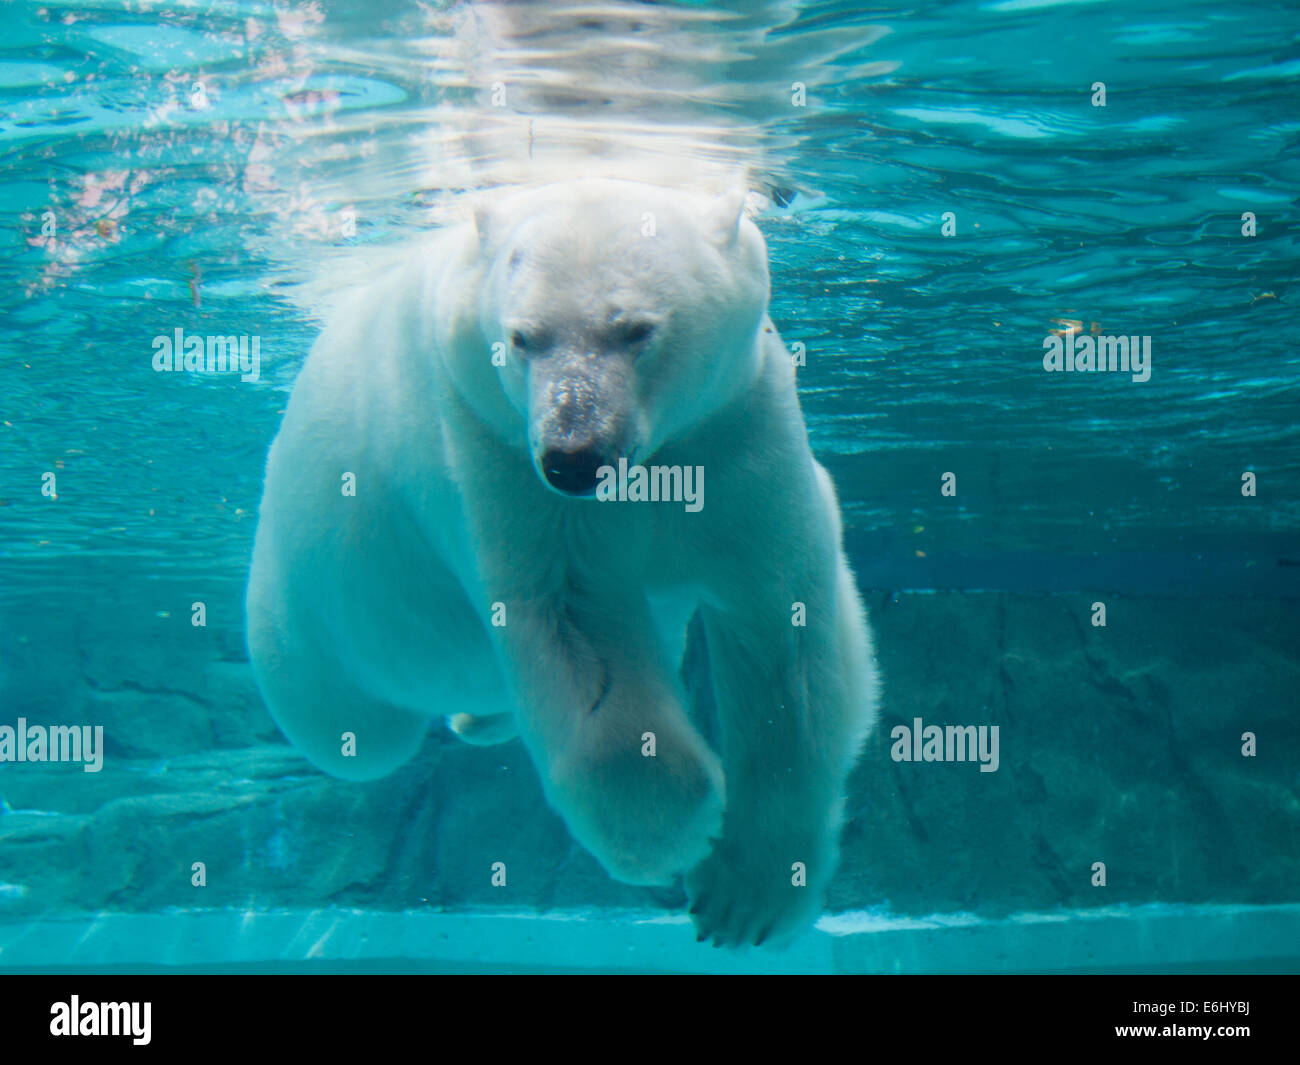 Anana, the resident female polar bear of the Lincoln Park Zoo in Chicago, swims underwater. - Stock Image